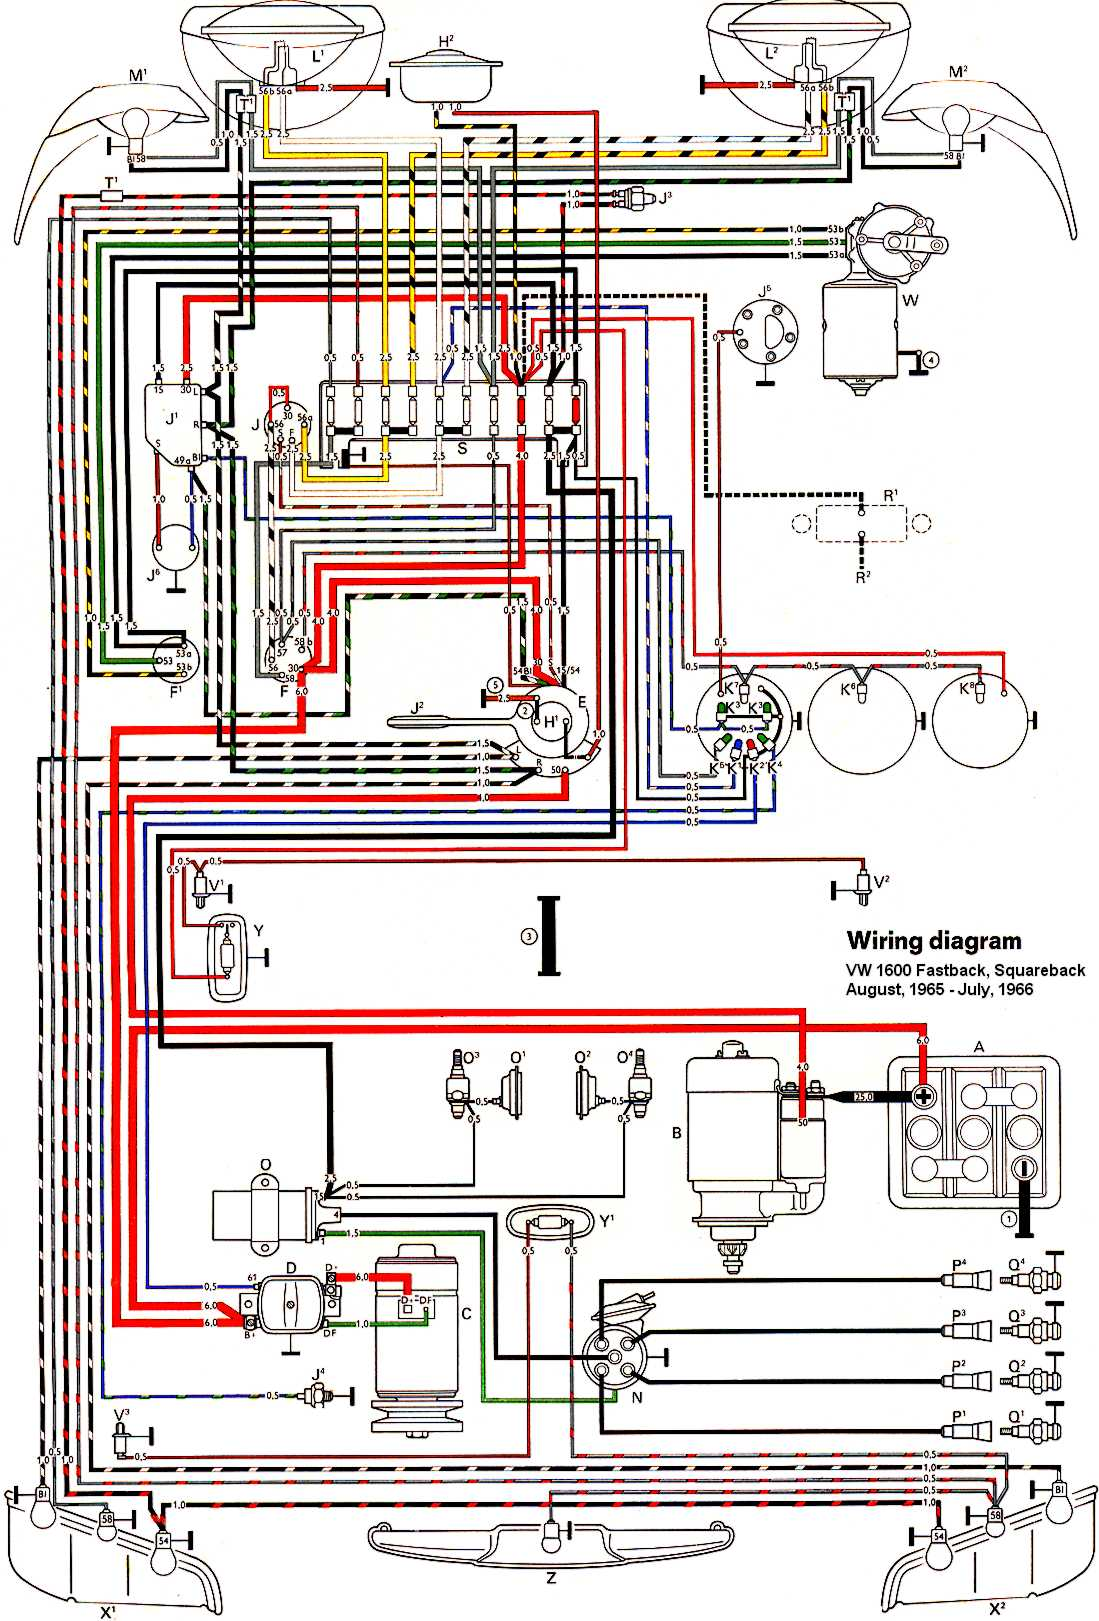 thesamba com type 3 wiring diagrams rh thesamba com 1969 VW Beetle Wiring Diagram 1968 Volkswagen Wiring Schematic